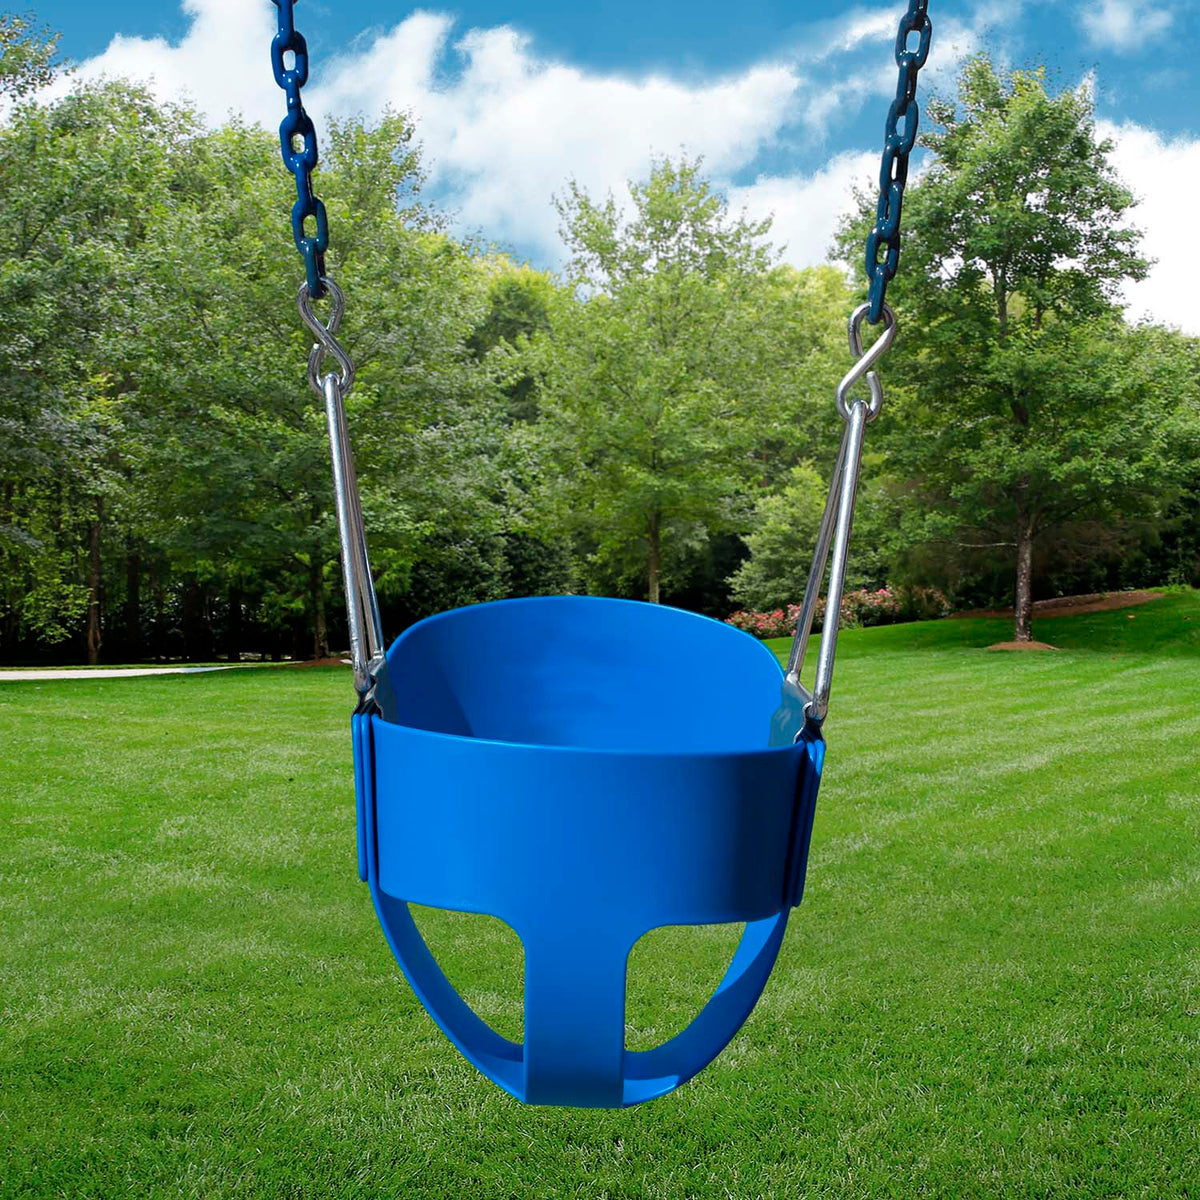 Gorilla-Playsets-Full-Bucket-Swing-Blue